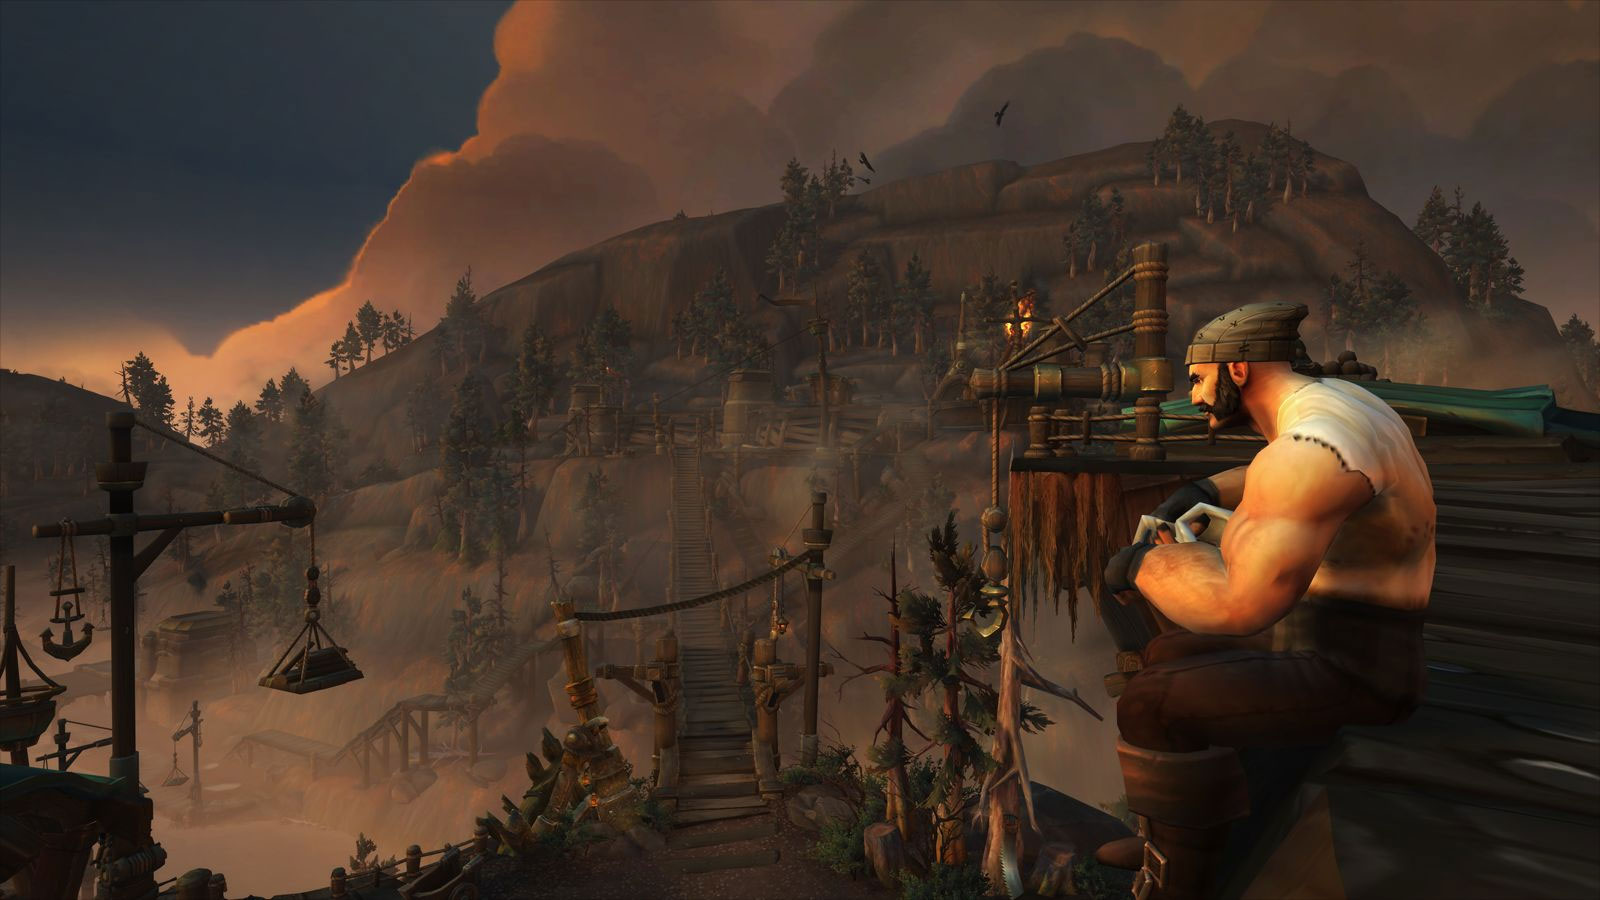 World of Warcraft's latest gargantuan patch adds cross-realm PVP and communities